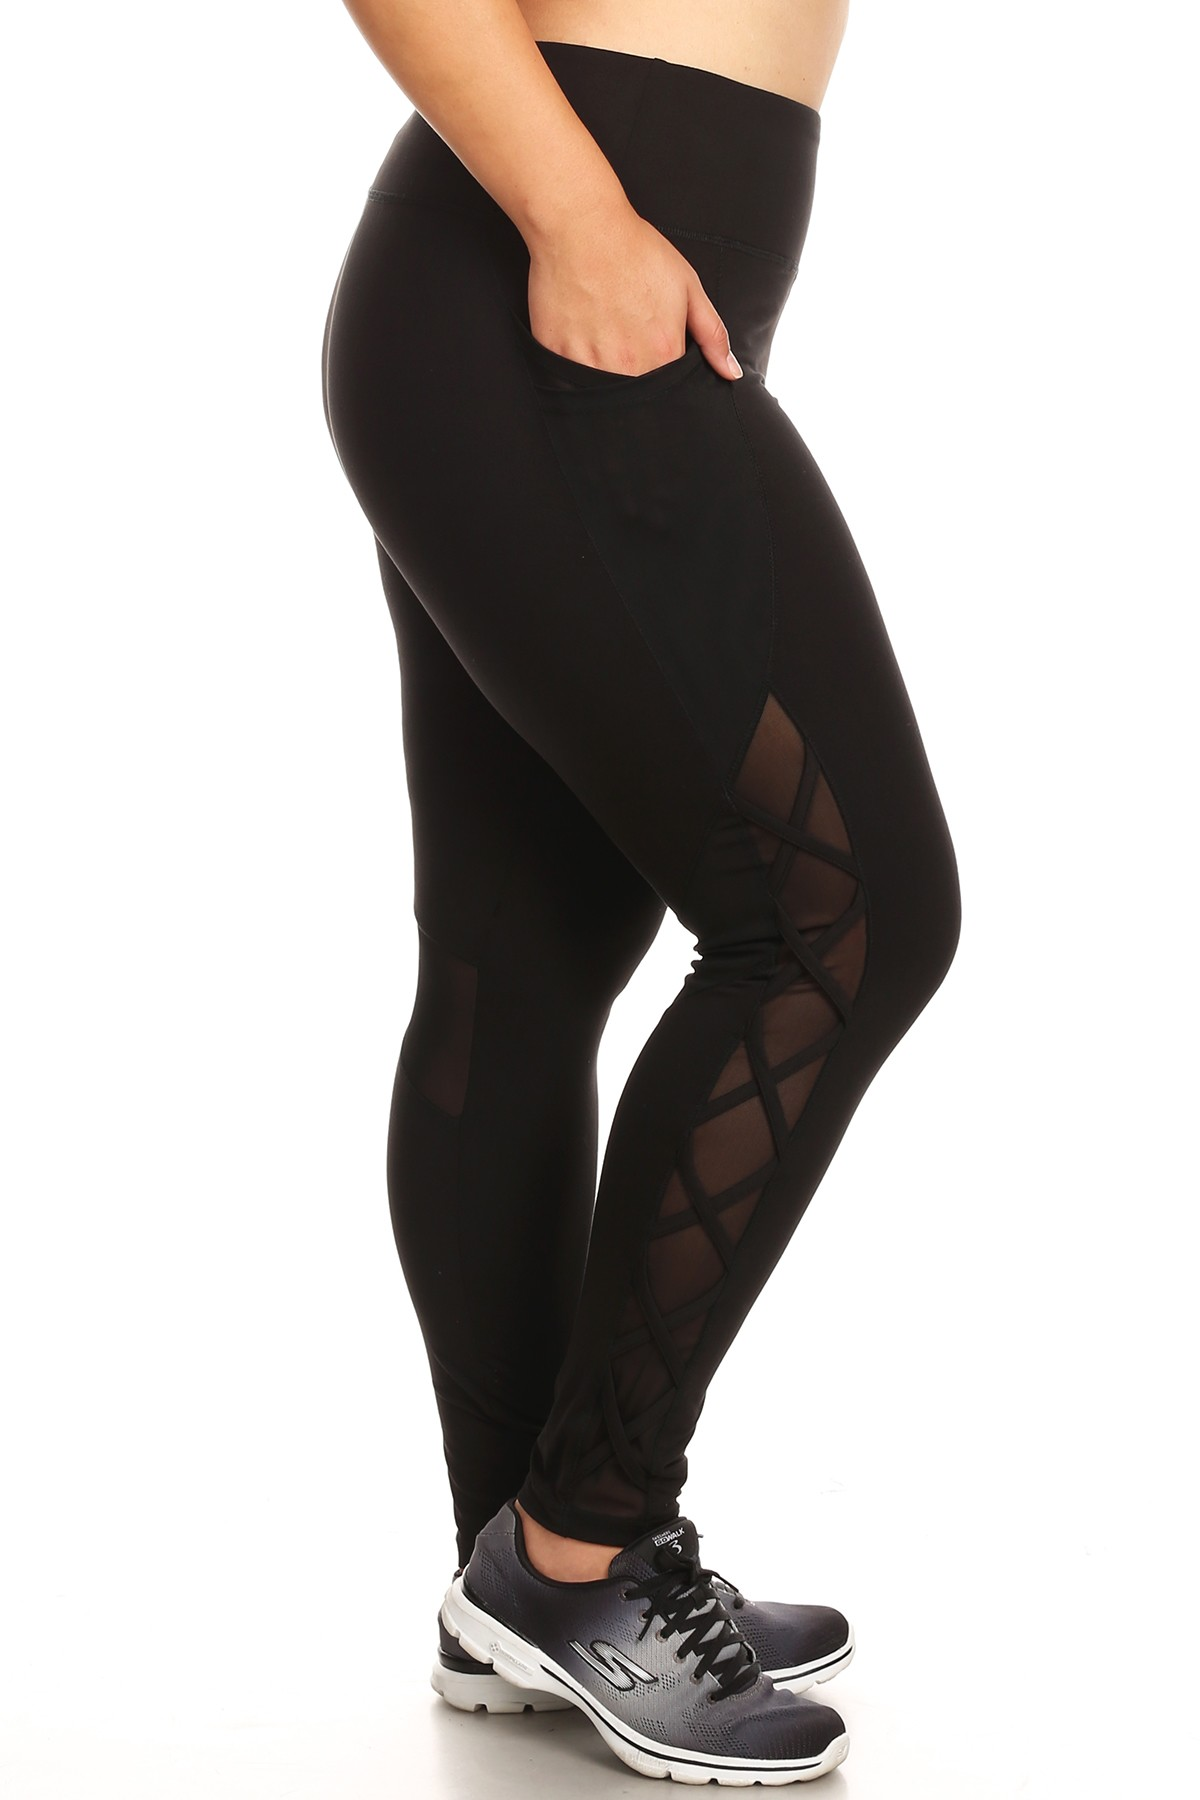 23fdb18a8 Women s Crisscross Mesh Workout Plus Size Leggings. Hover to zoom